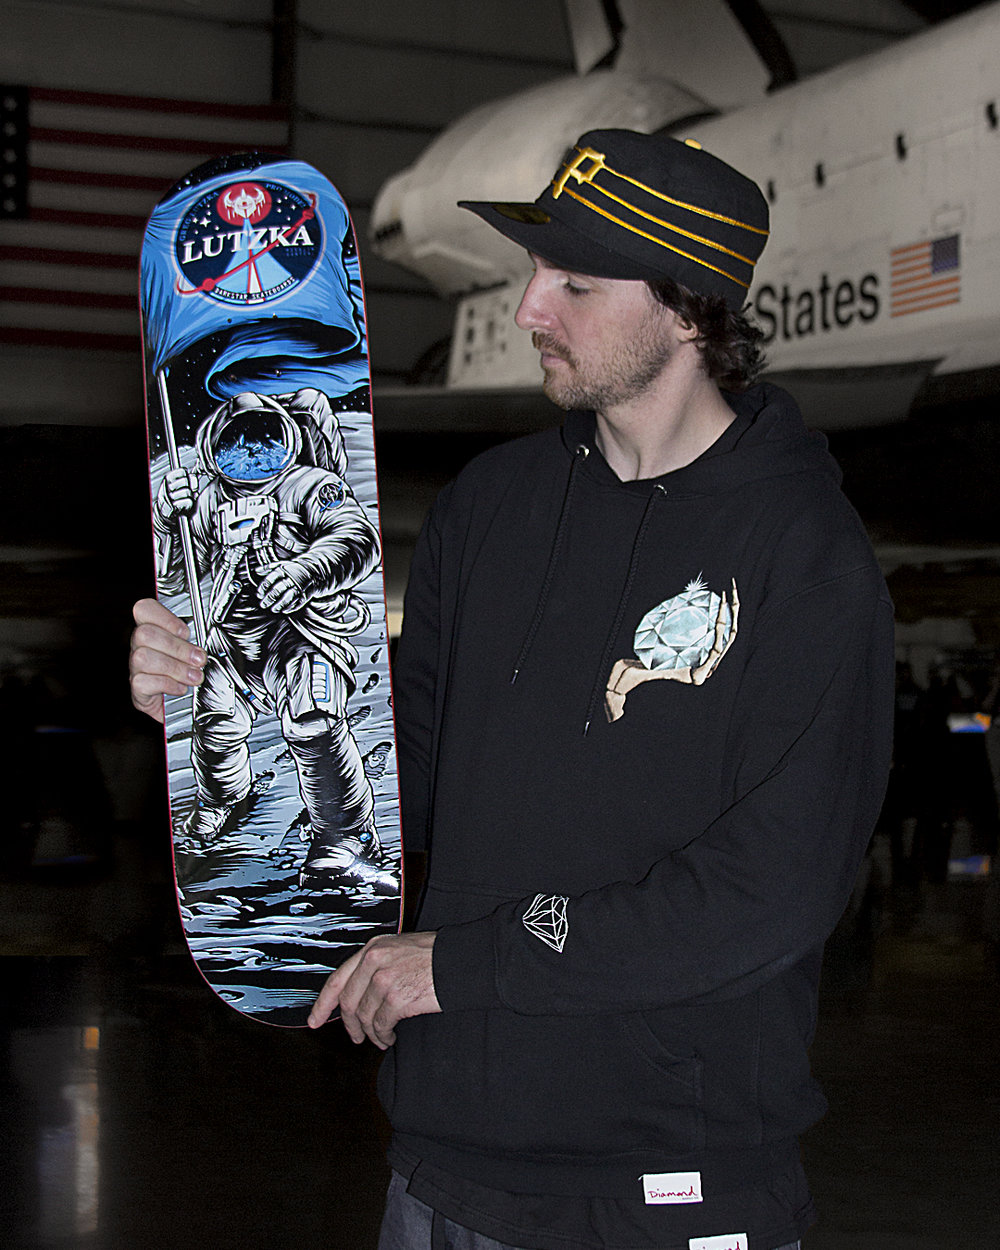 darkstar-skateboards-greg-lutzka-space_1350.jpg